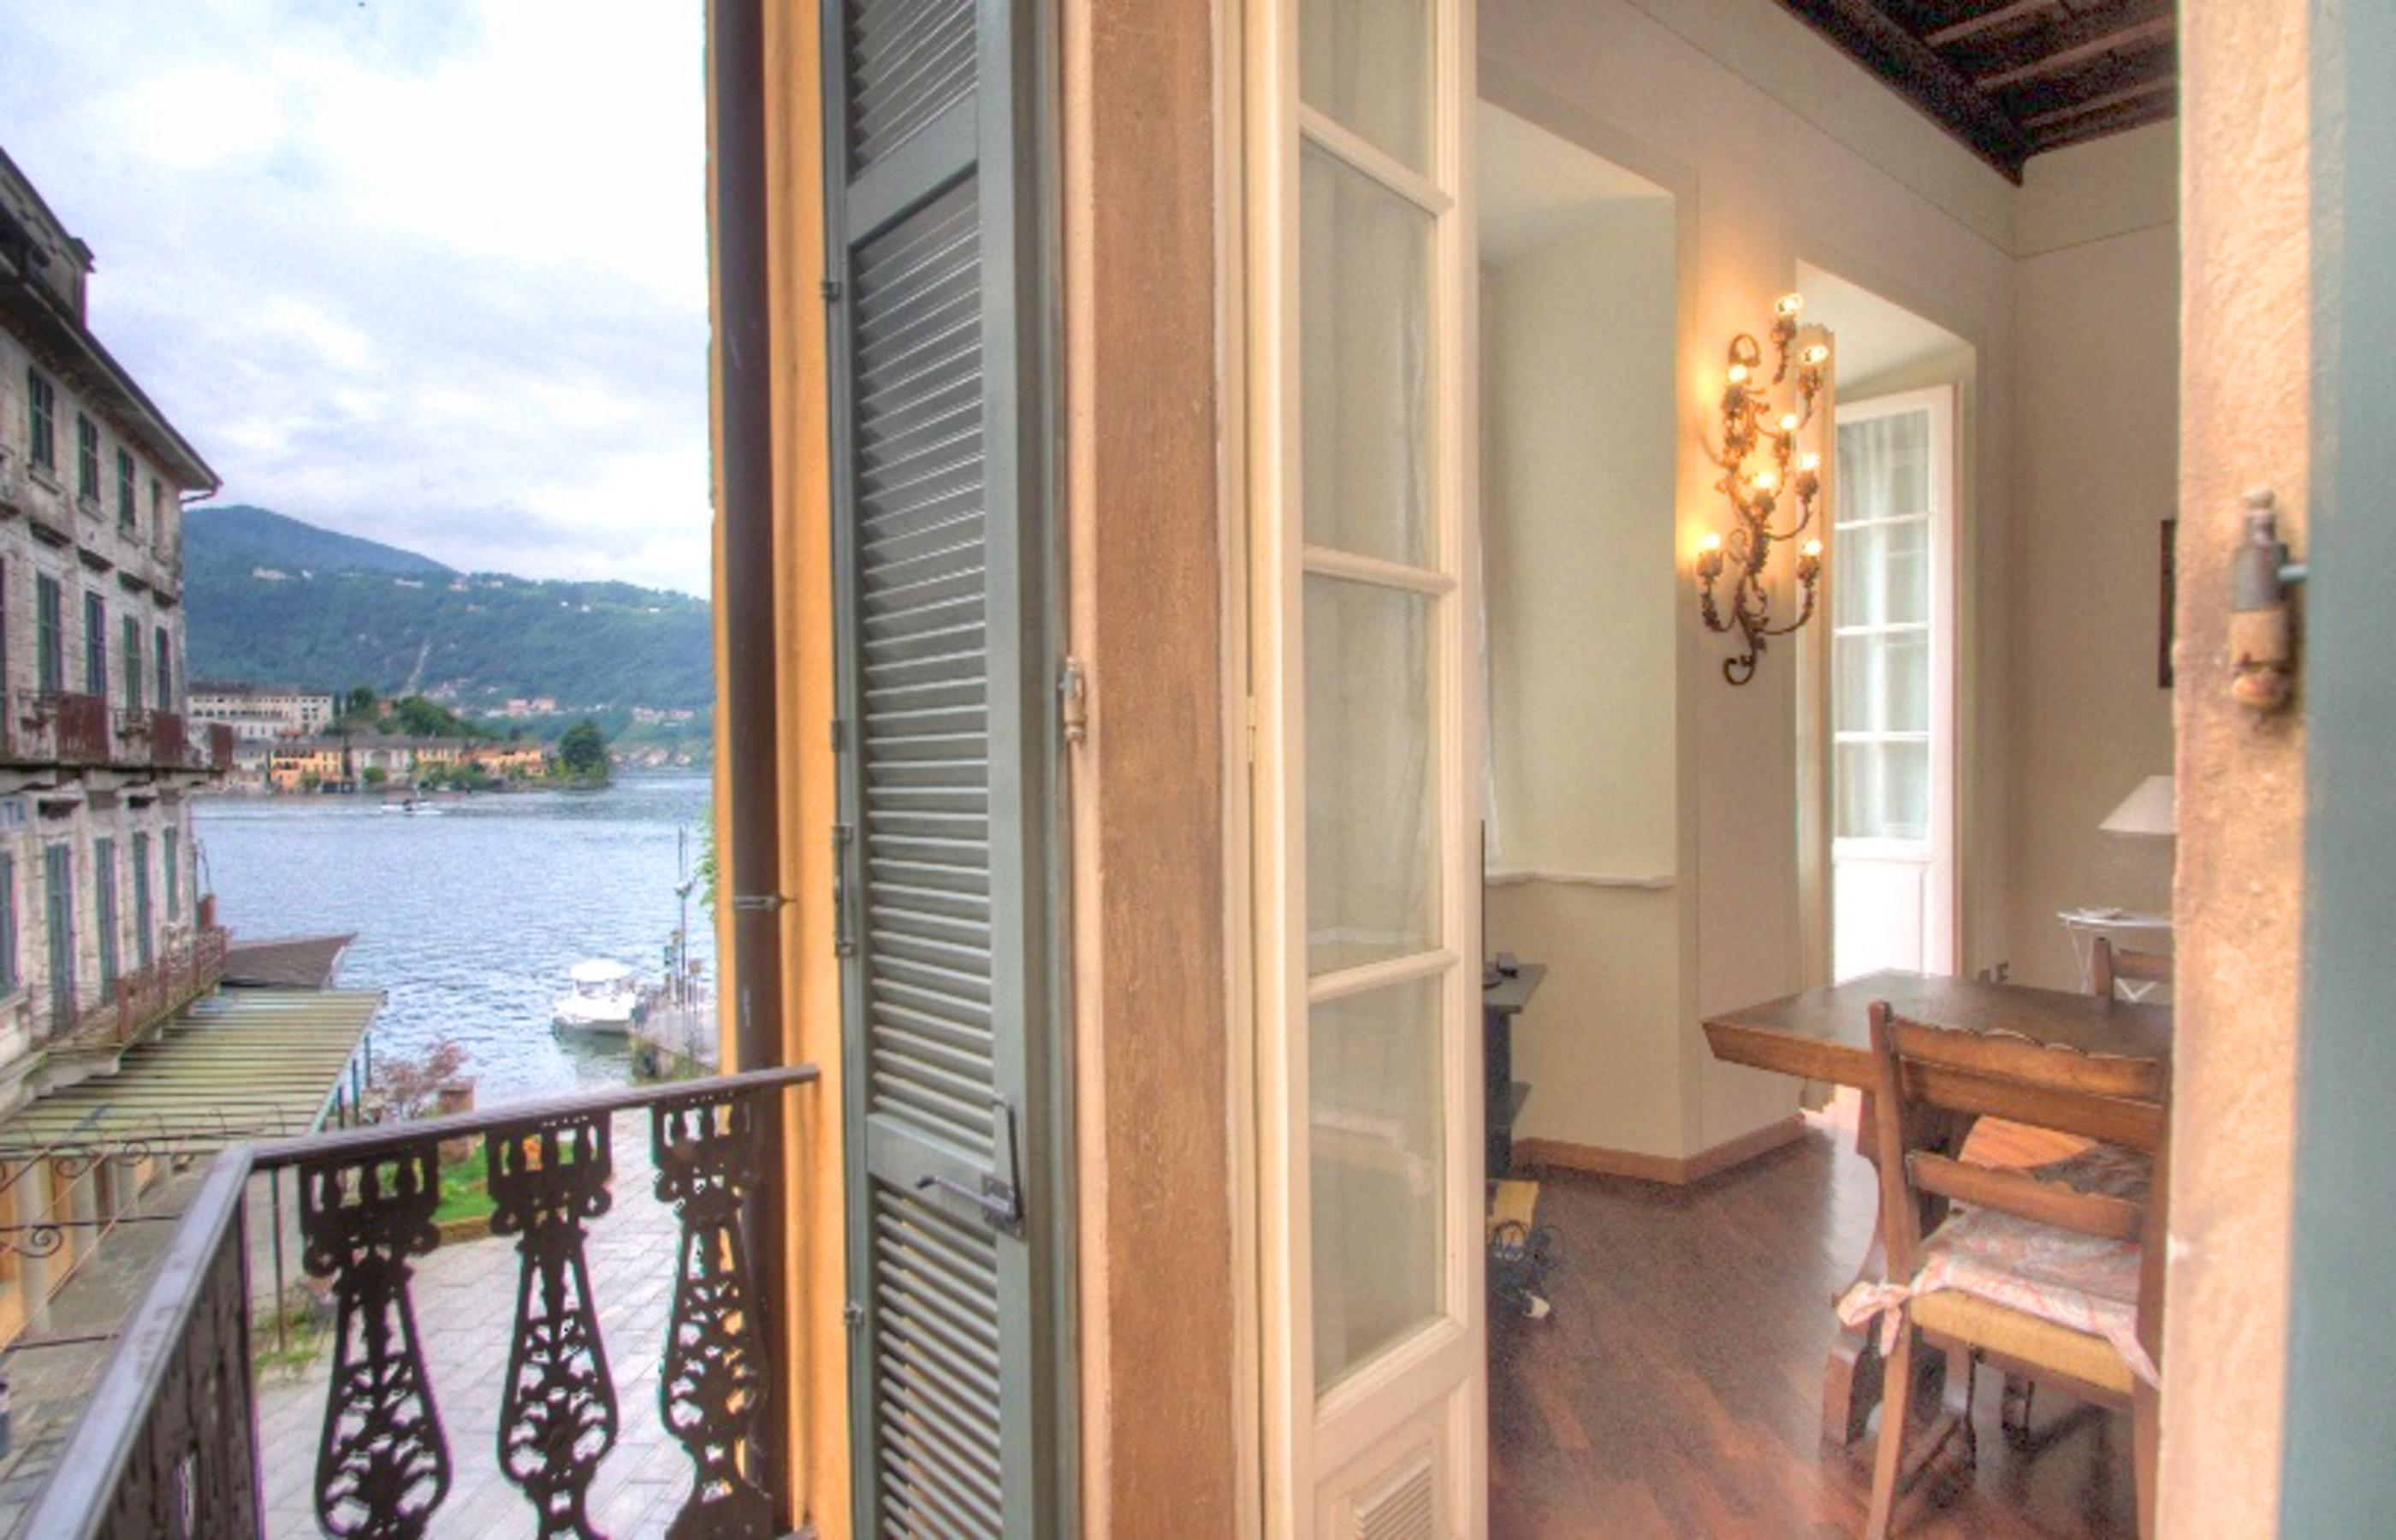 ORTA Apartment with two balconies on the embarkation square